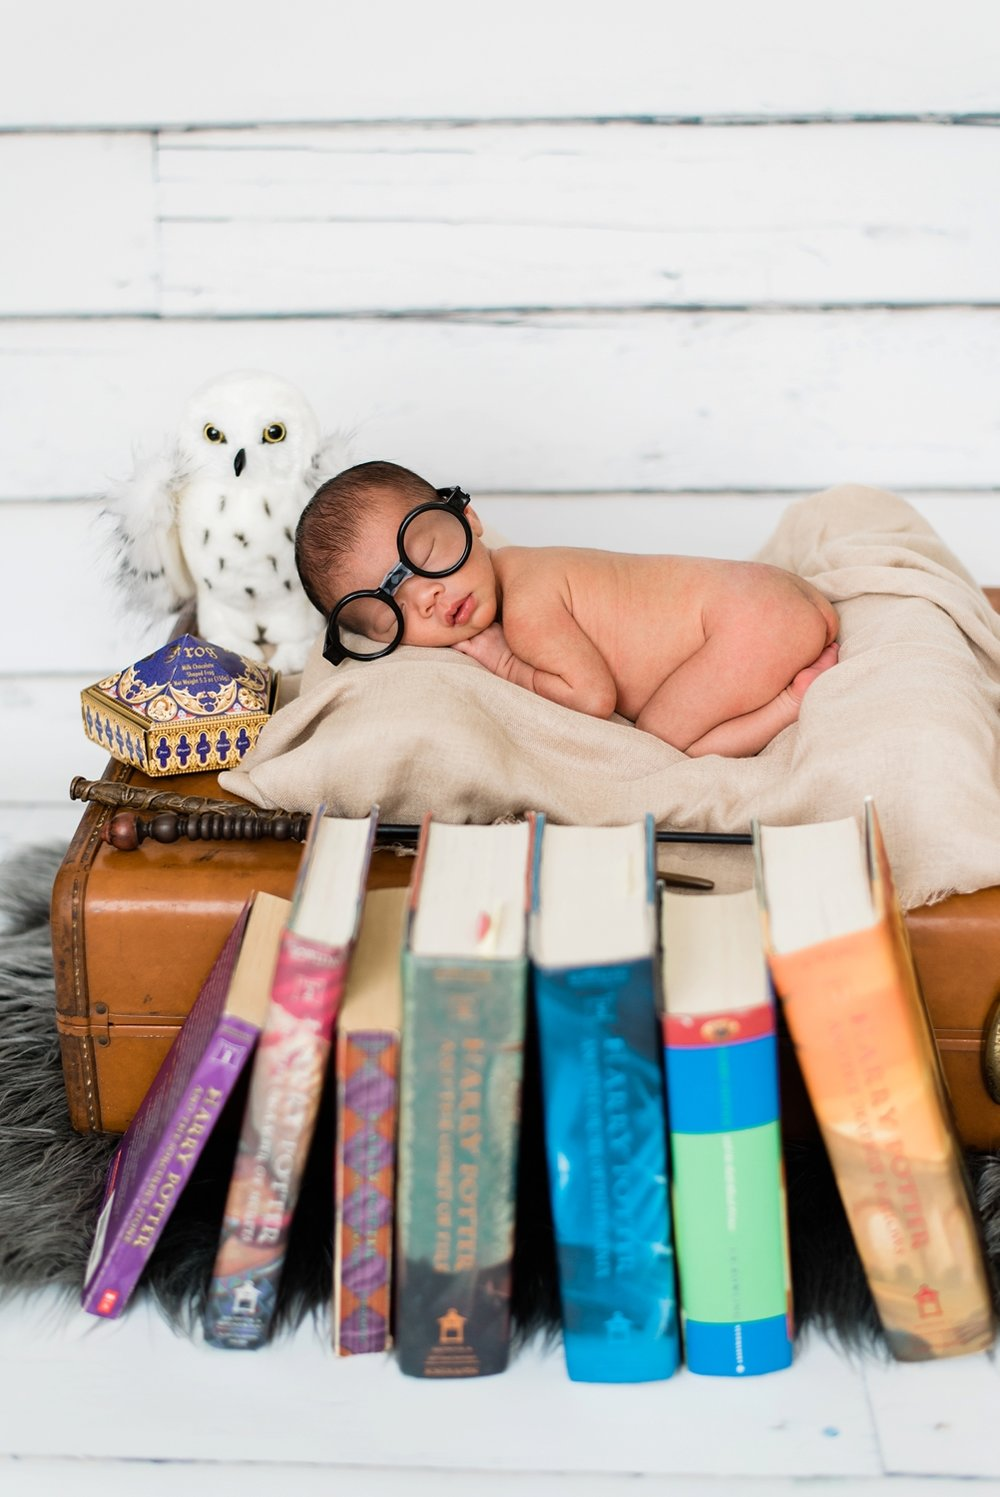 harry-potter-themed-newborn-photos-portland-shelley-marie-photography-015_cr.jpg